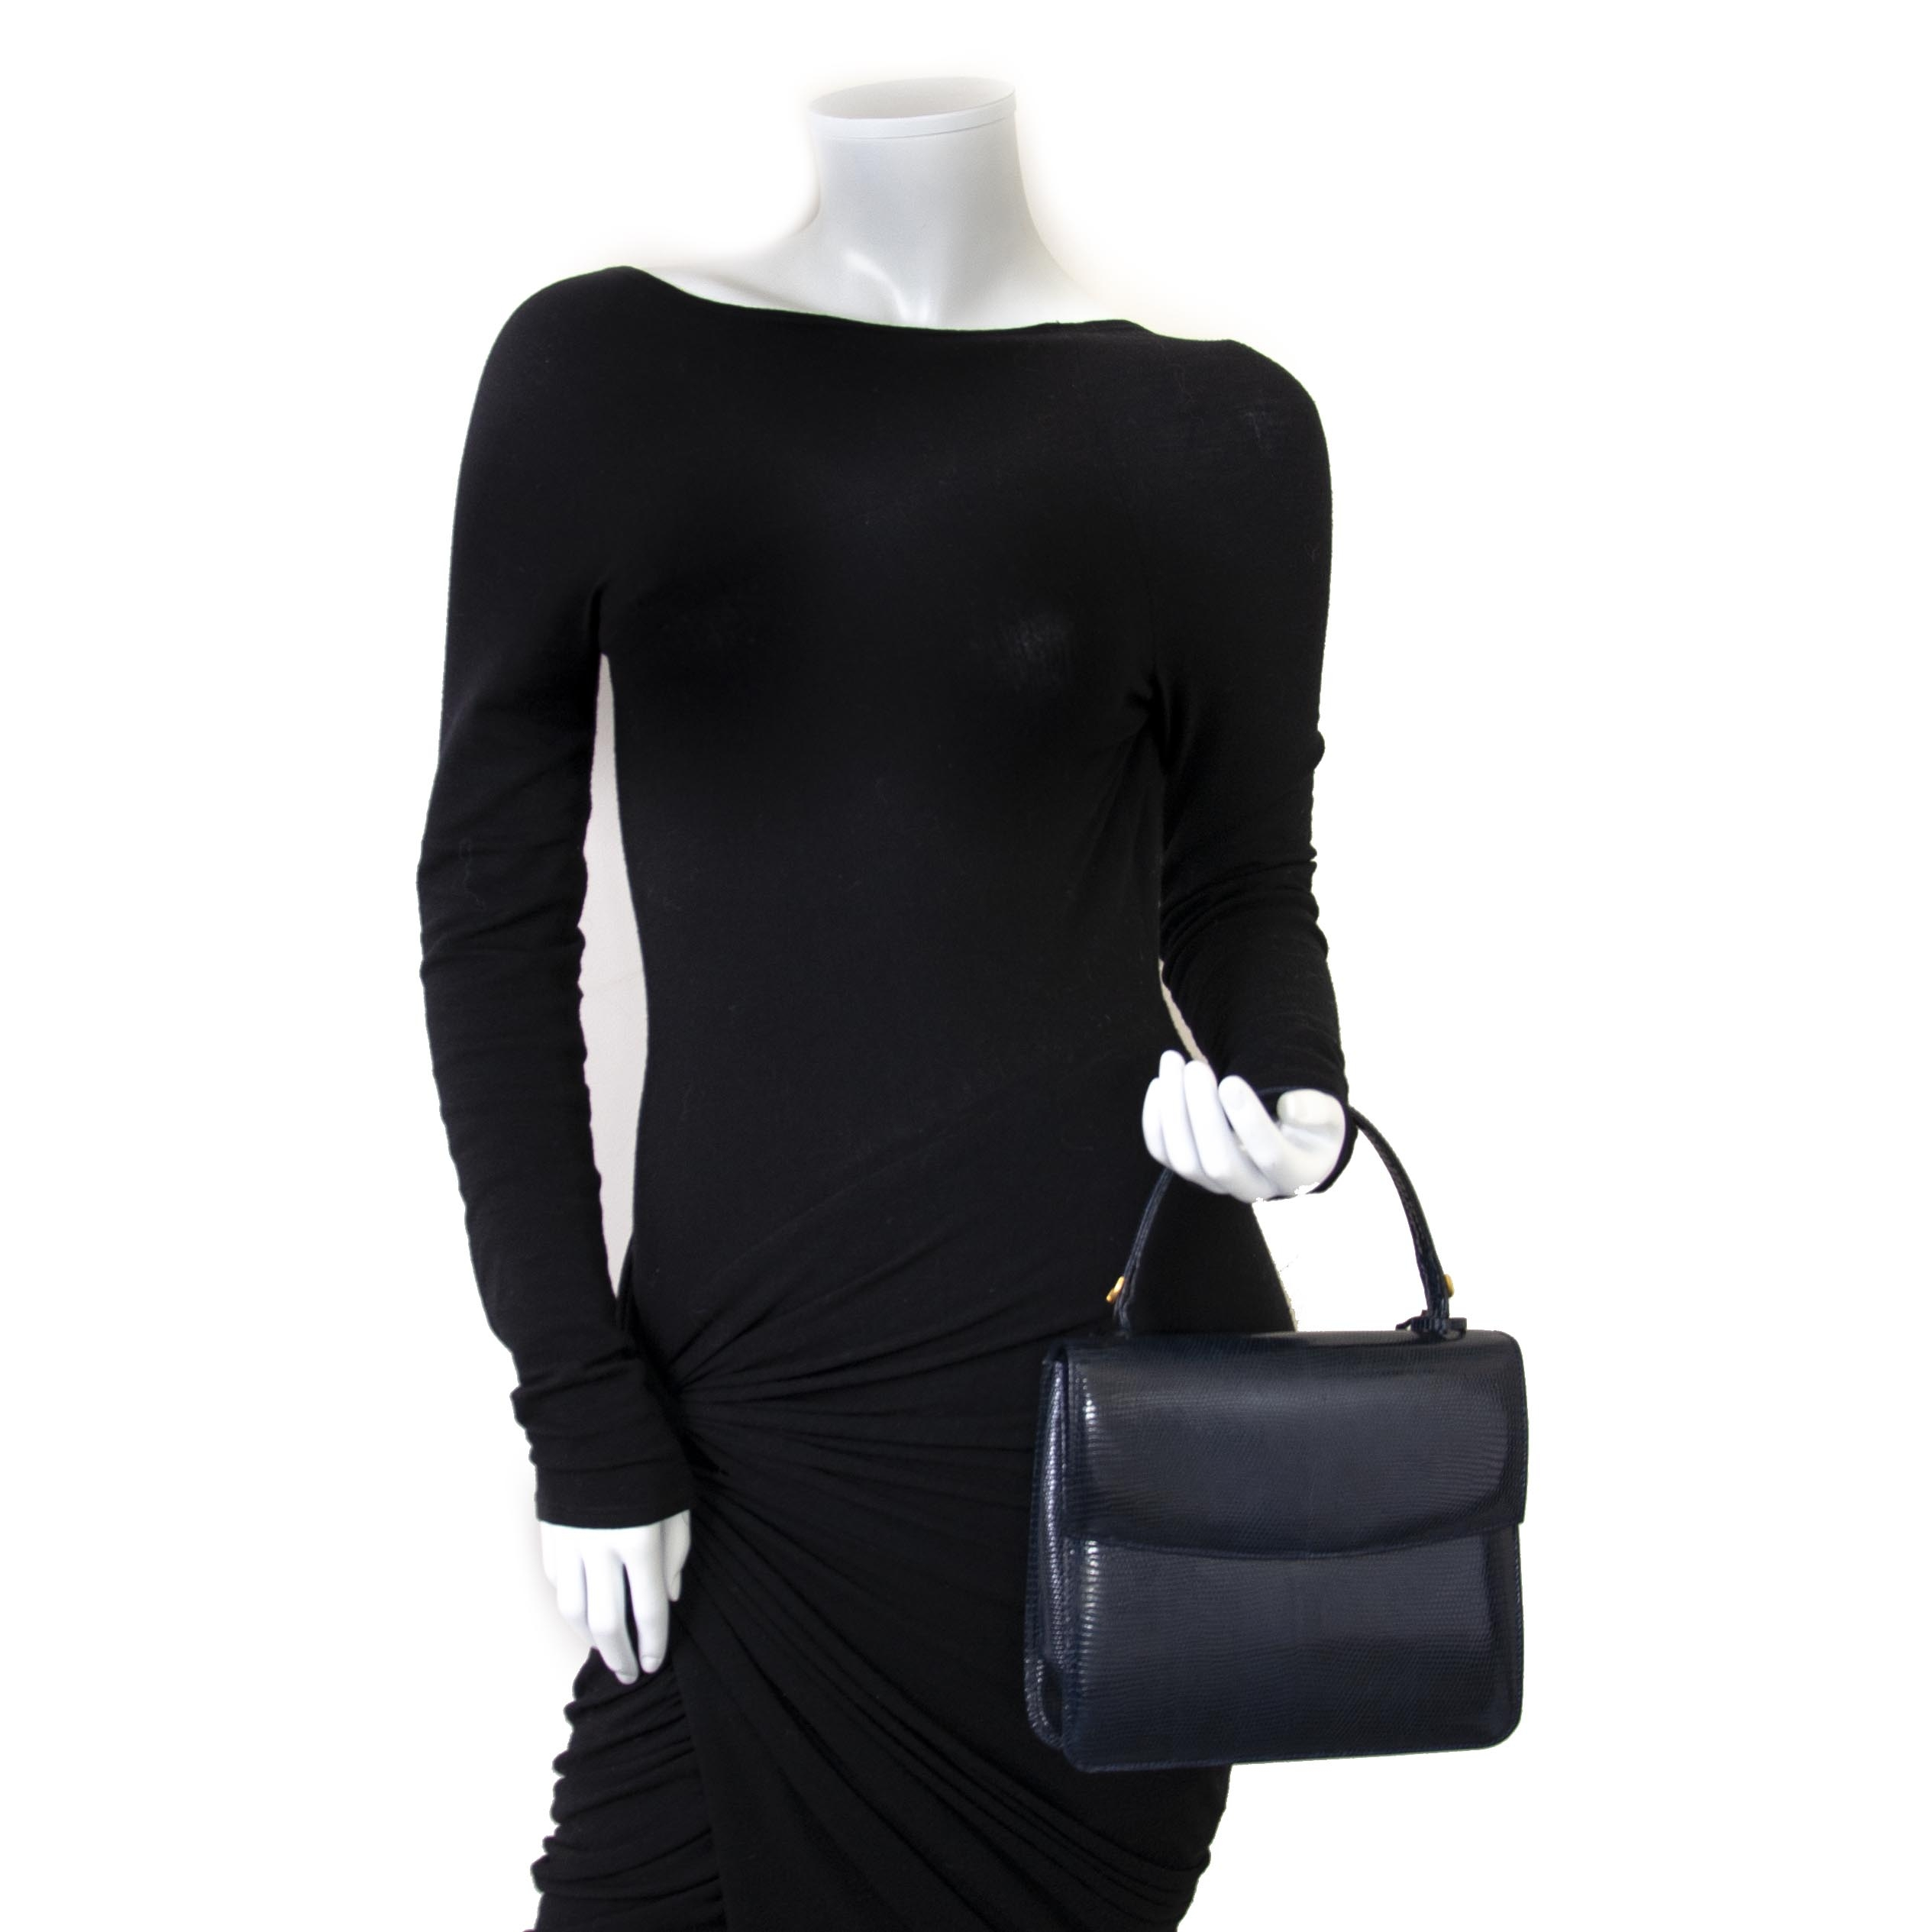 We buy and sell your authentic Delvaux Blue Lizard Top Handle Bag